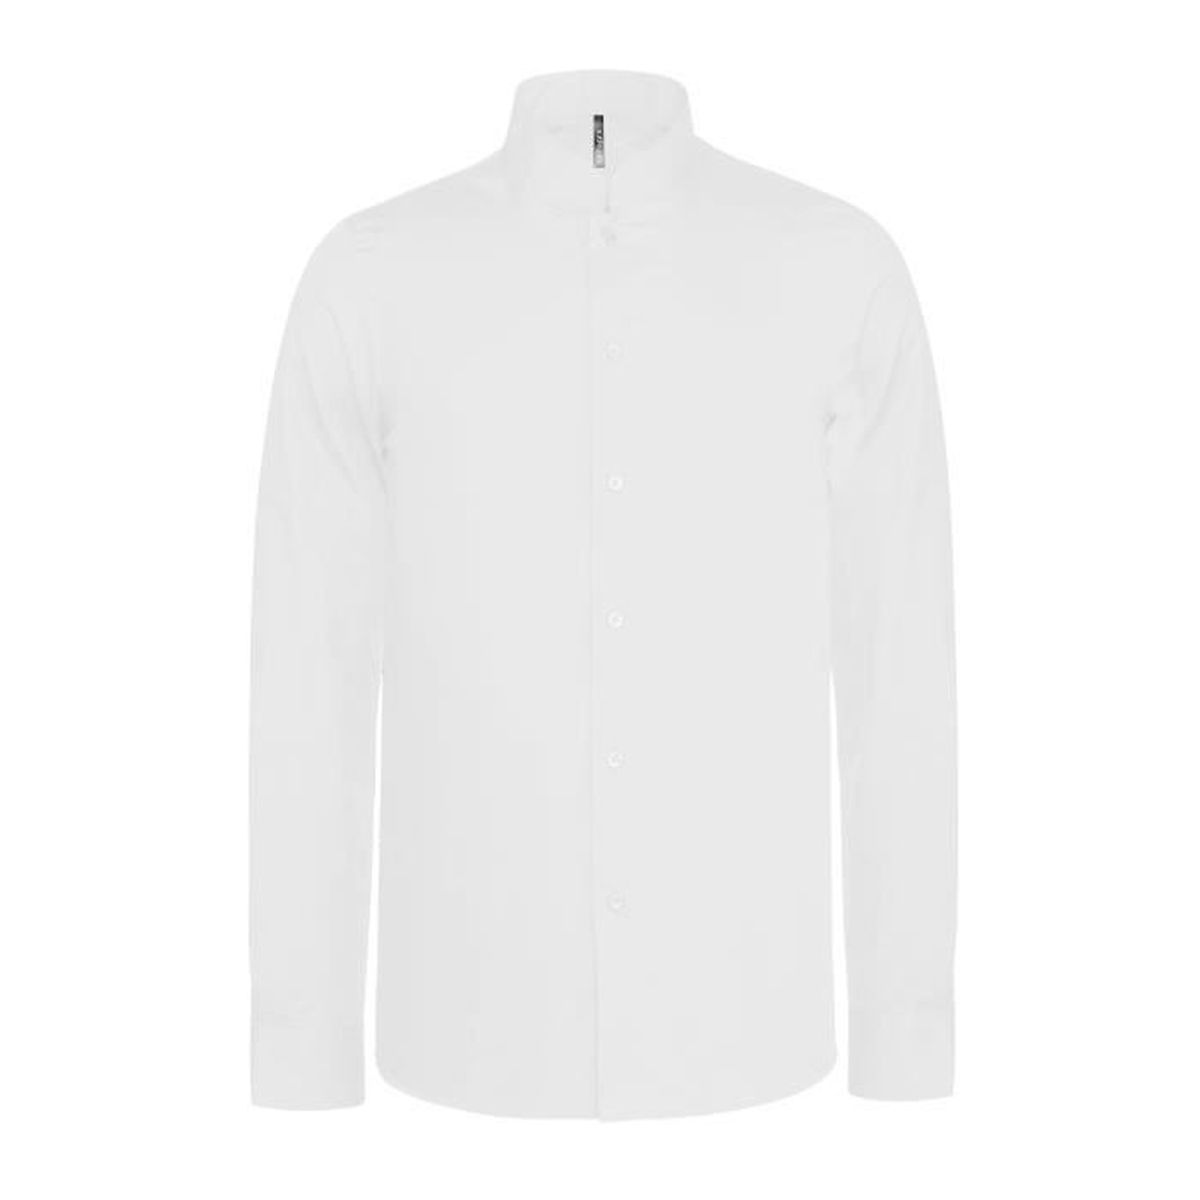 CHEMISE COL MAO MANCHES LONGUES White White Achat Vente